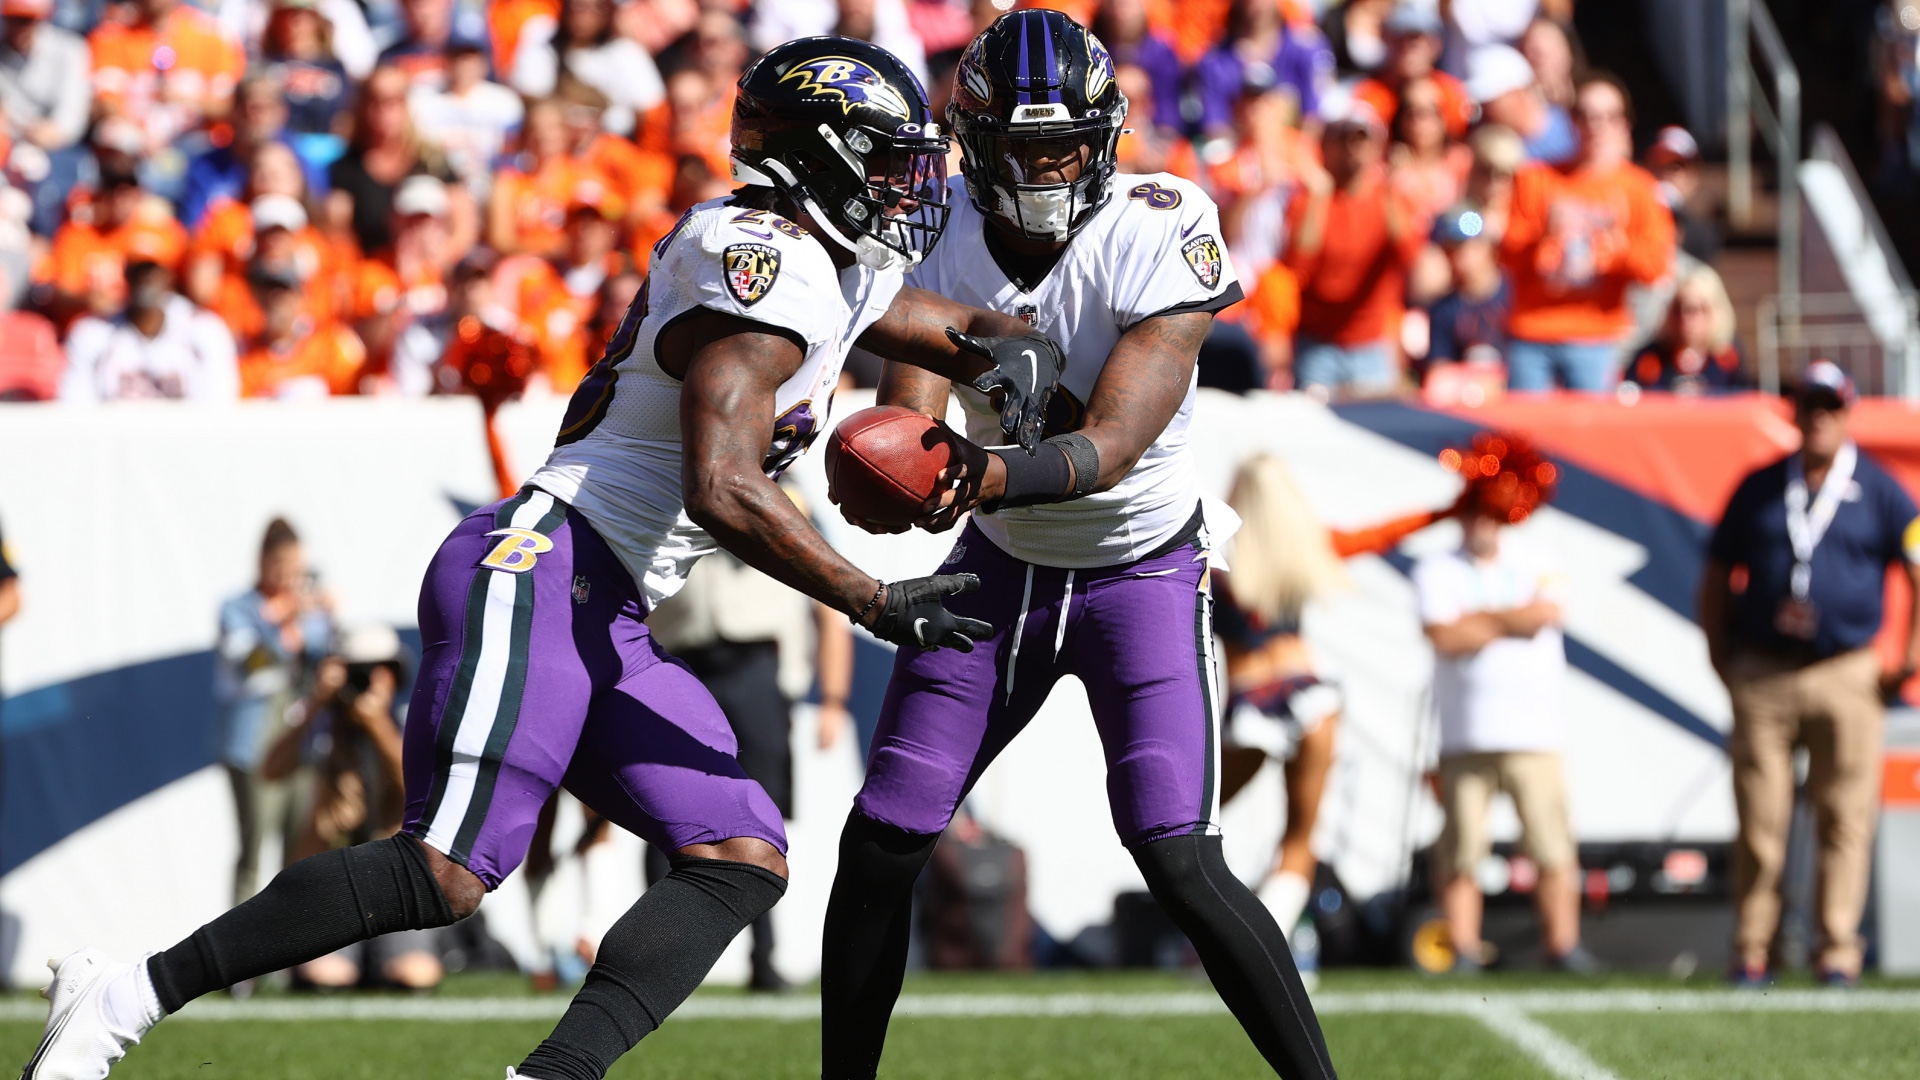 NFL 100-yard rushing record: How Ravens could break Steelers' decades-old record vs. Colts